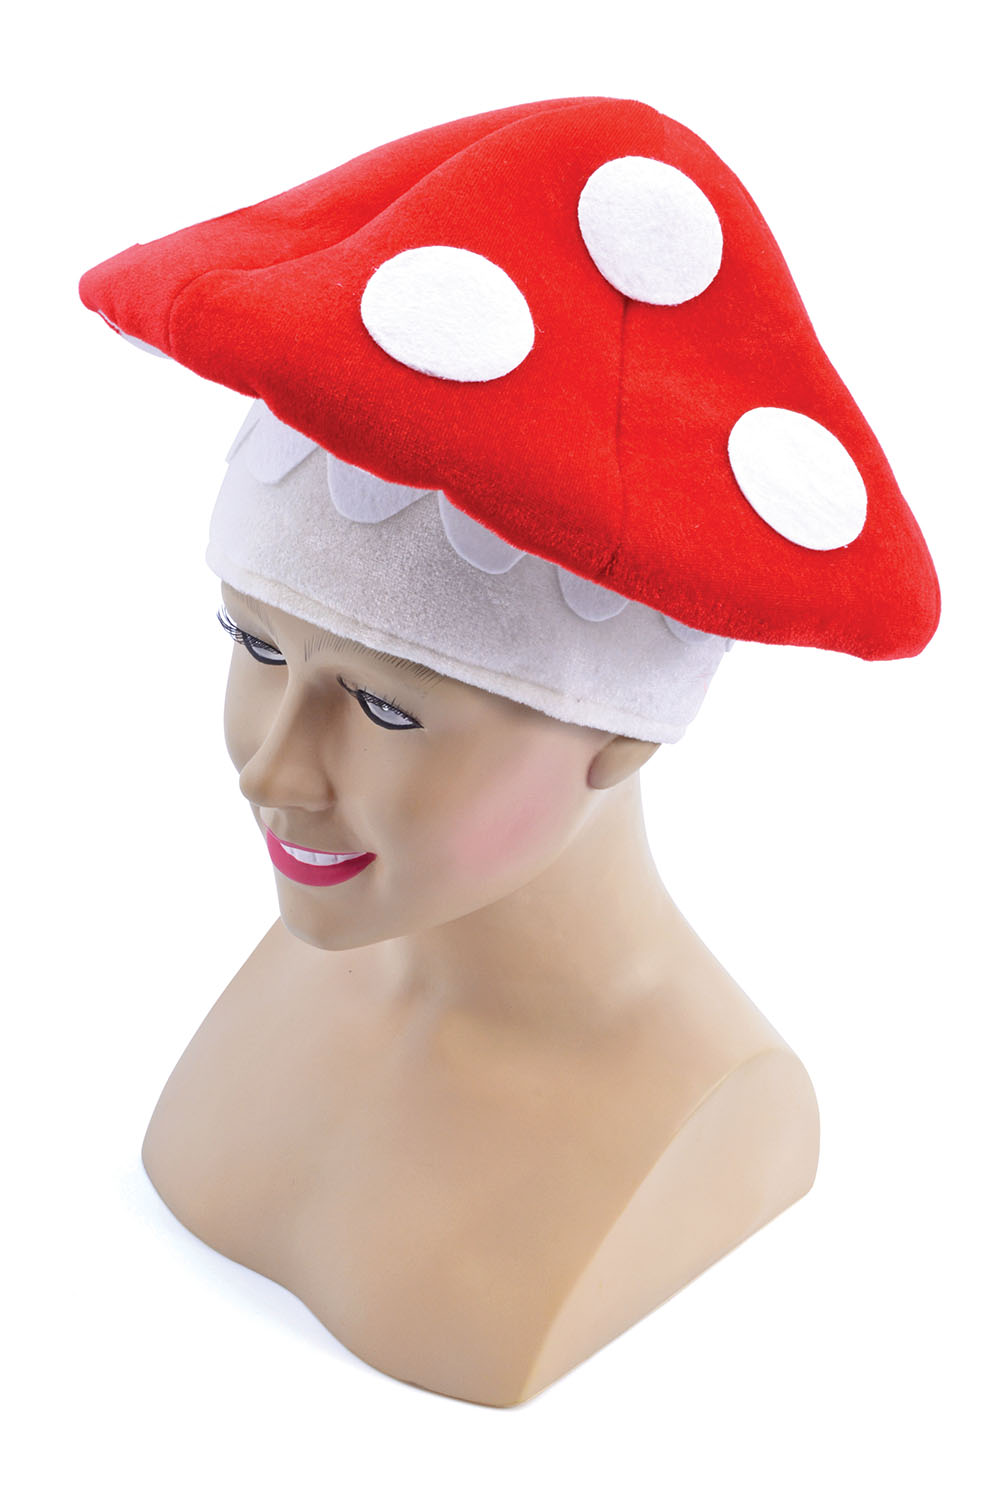 Red & White Mario Toad Hat Toadette Fancy Dress Costume